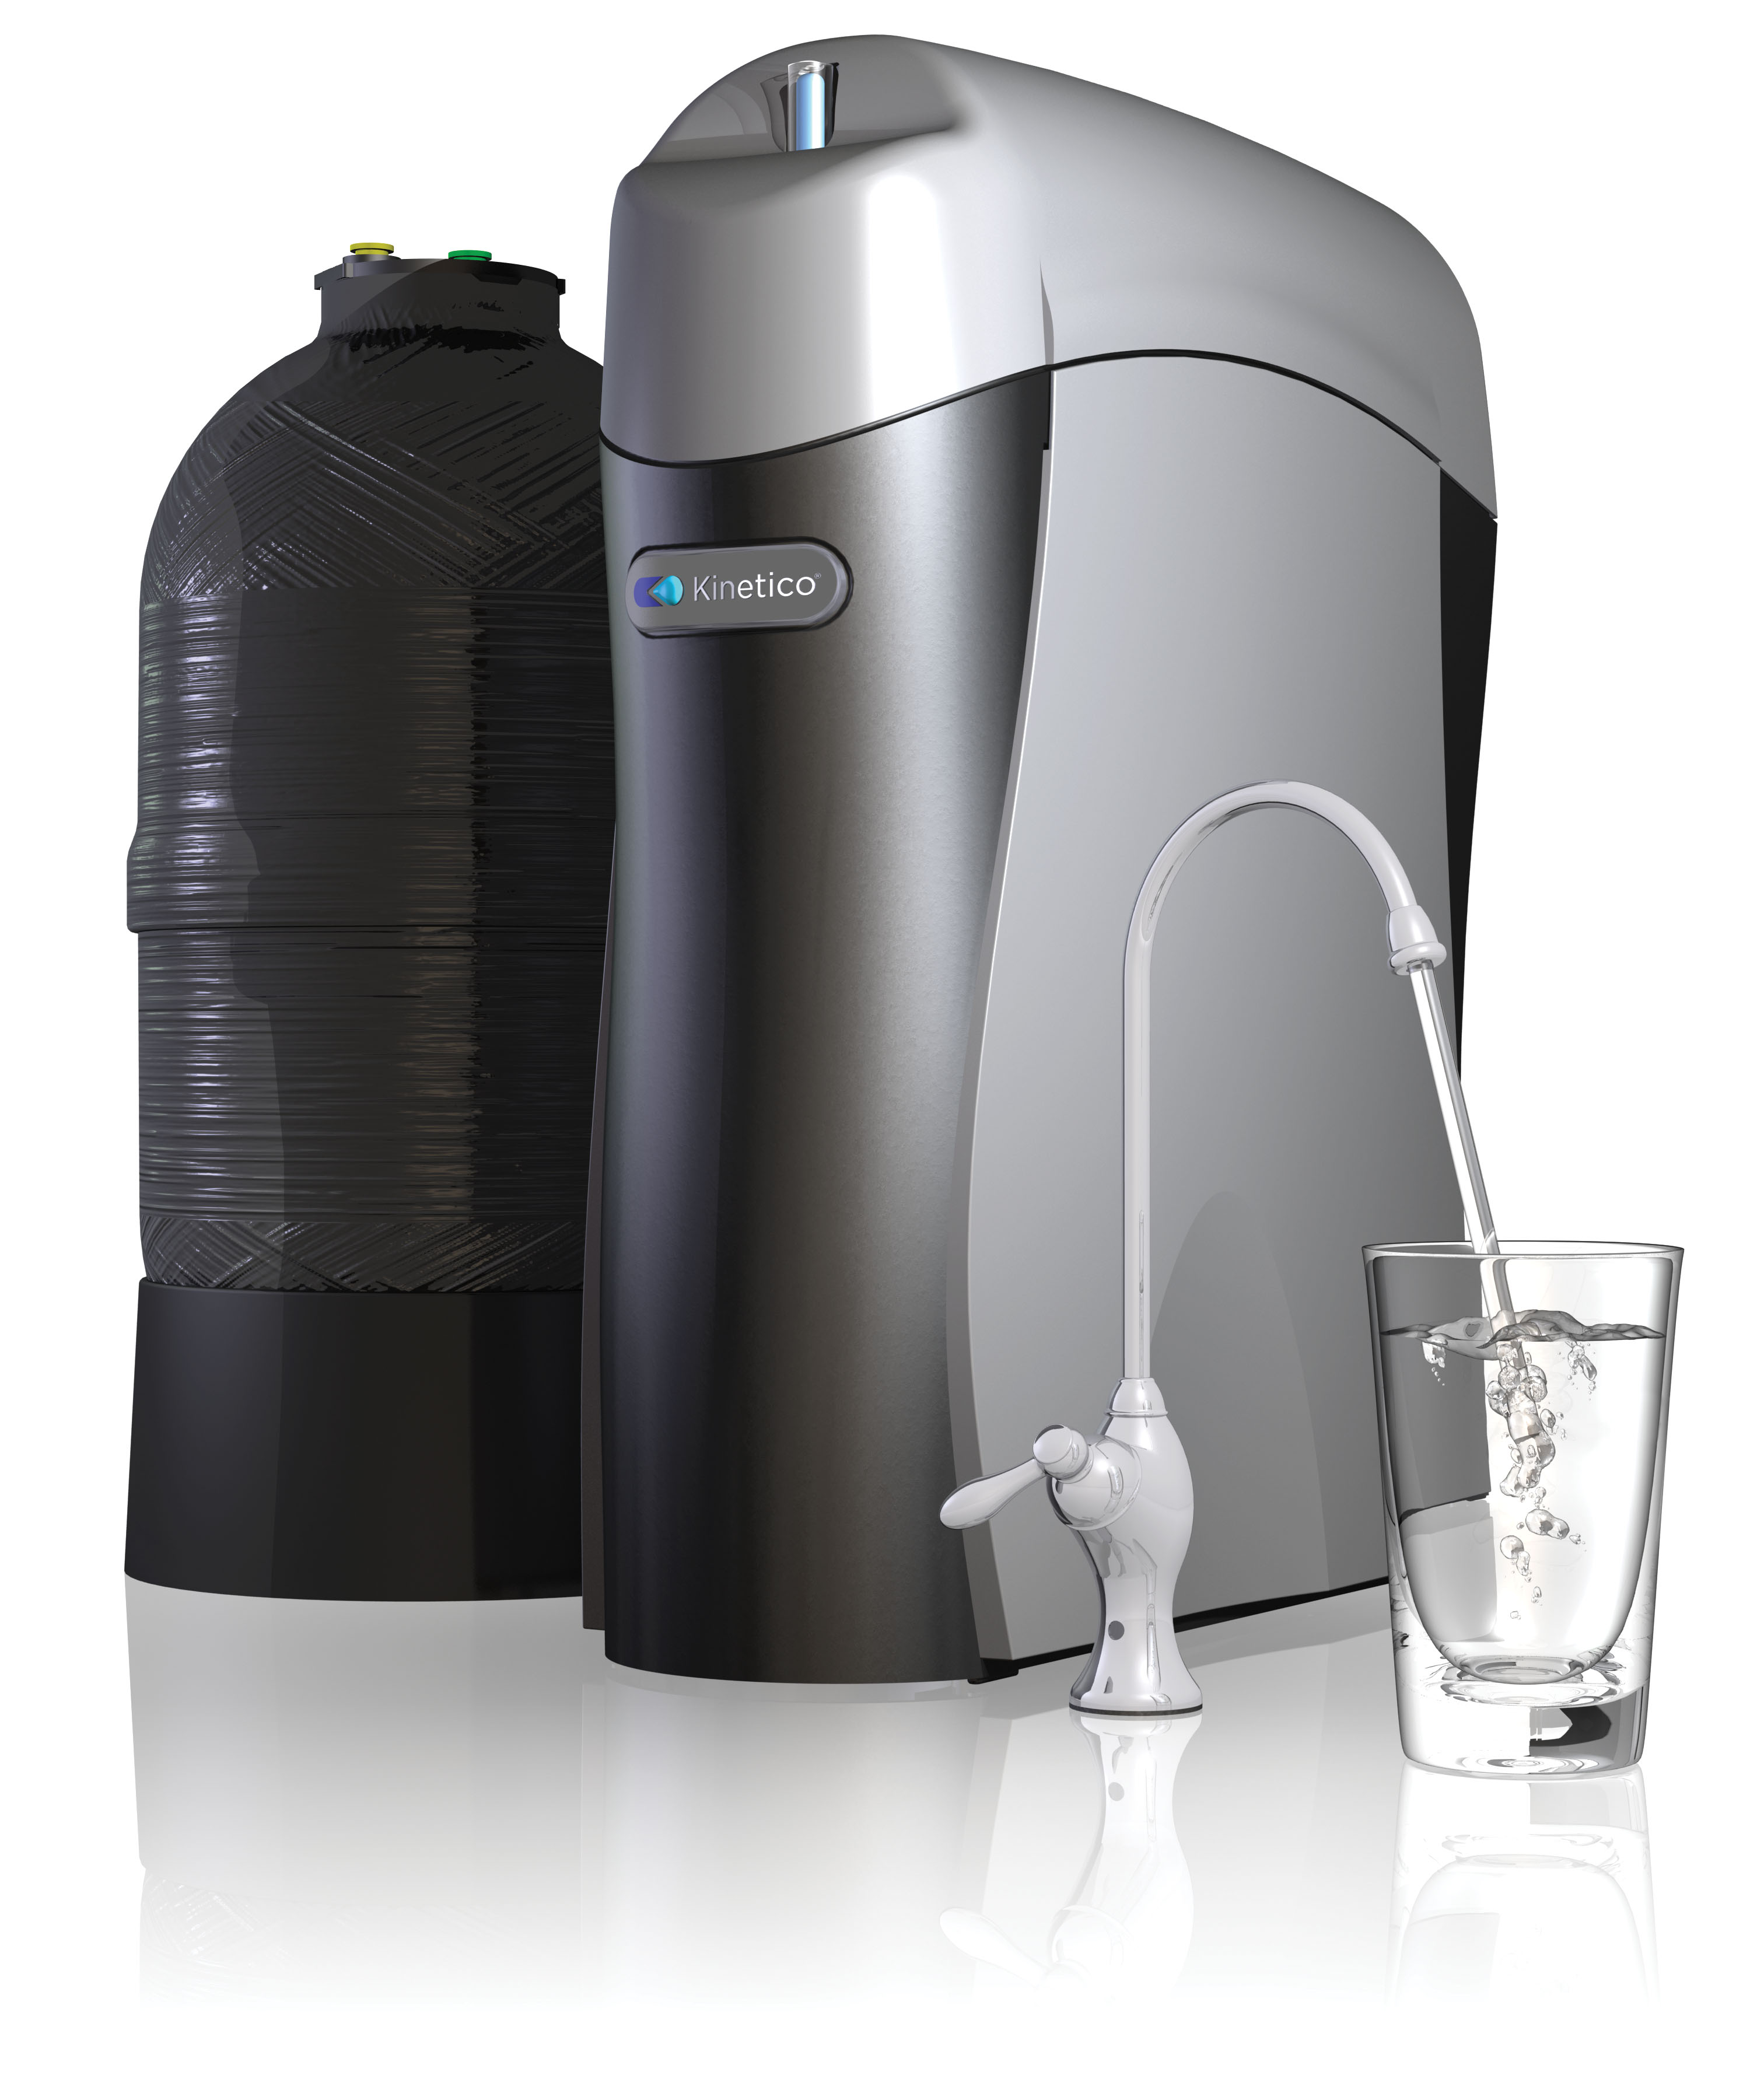 Integrity Water Solutions is proud to offer Kinetico Water Systems Premier Series Water Softener